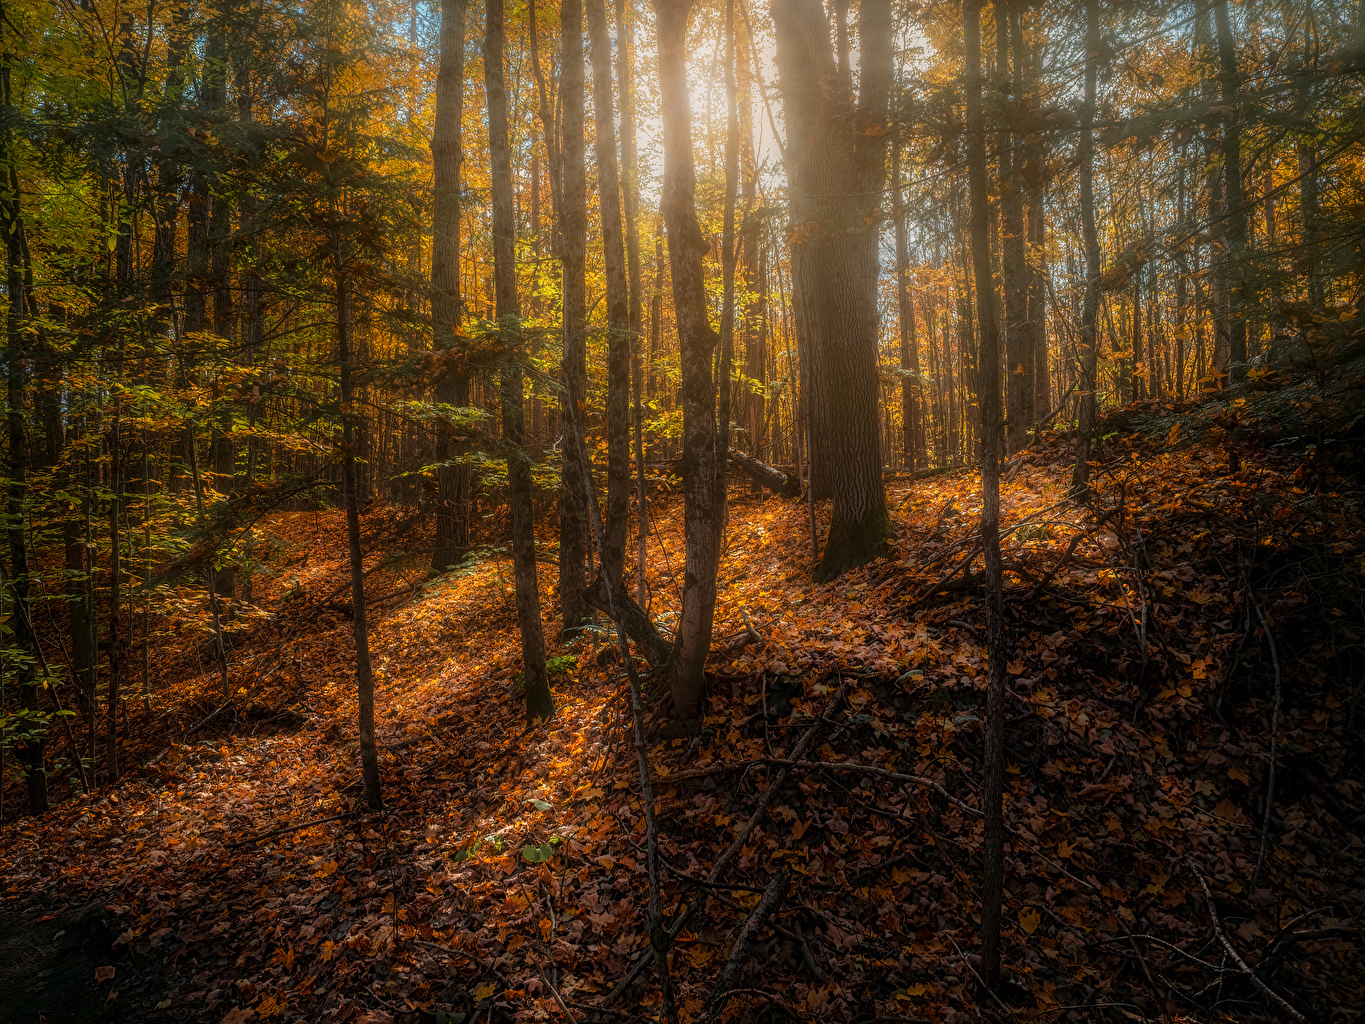 Pictures Leaf Canada Copeland forest near Barrie Autumn Nature Trees Foliage Forests